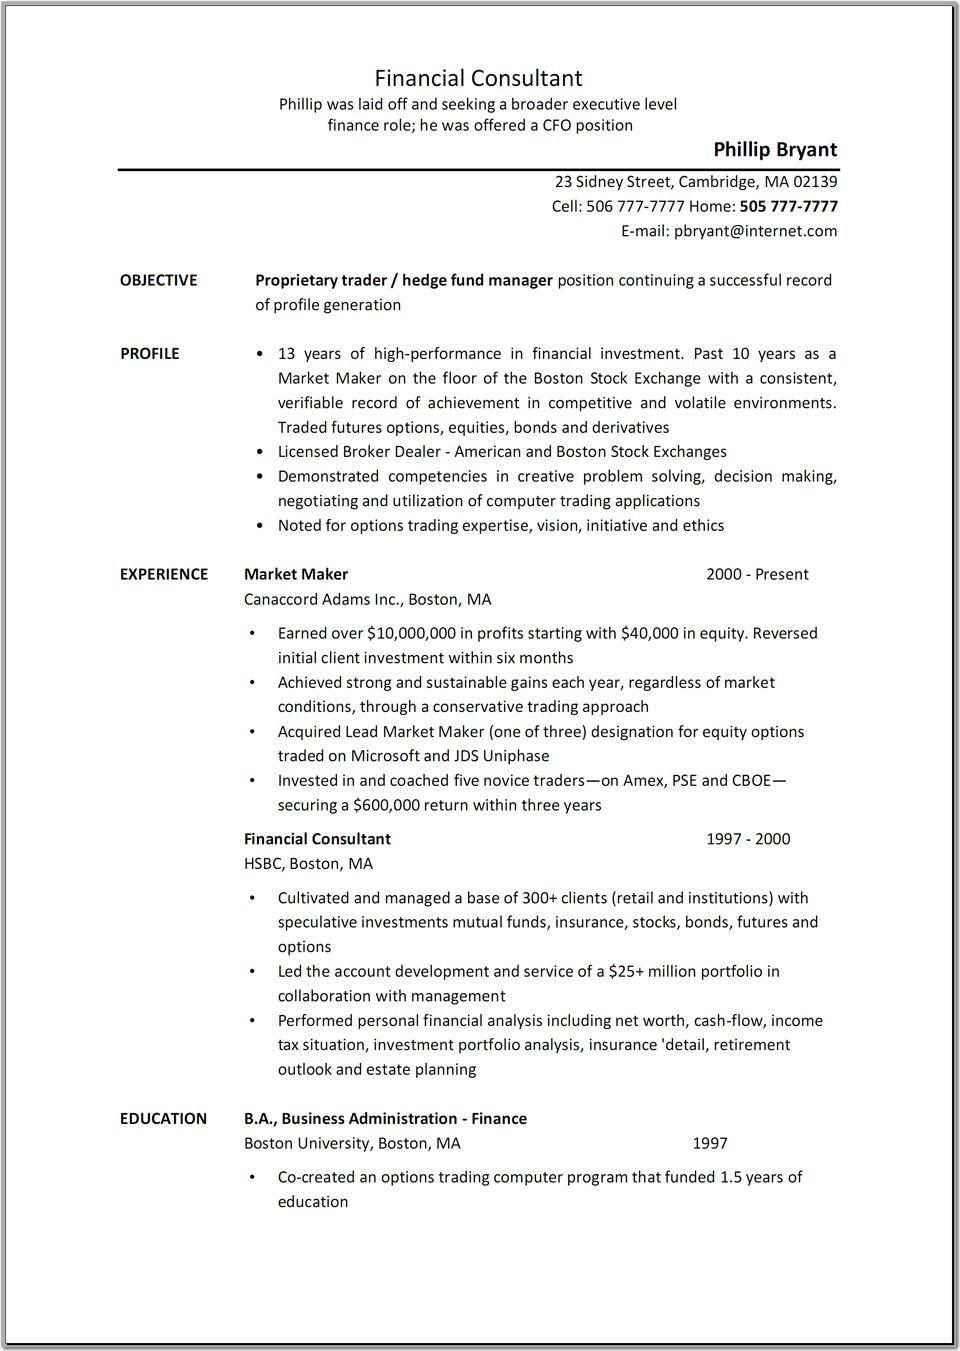 business consultant job description resume. Resume Example. Resume CV Cover Letter